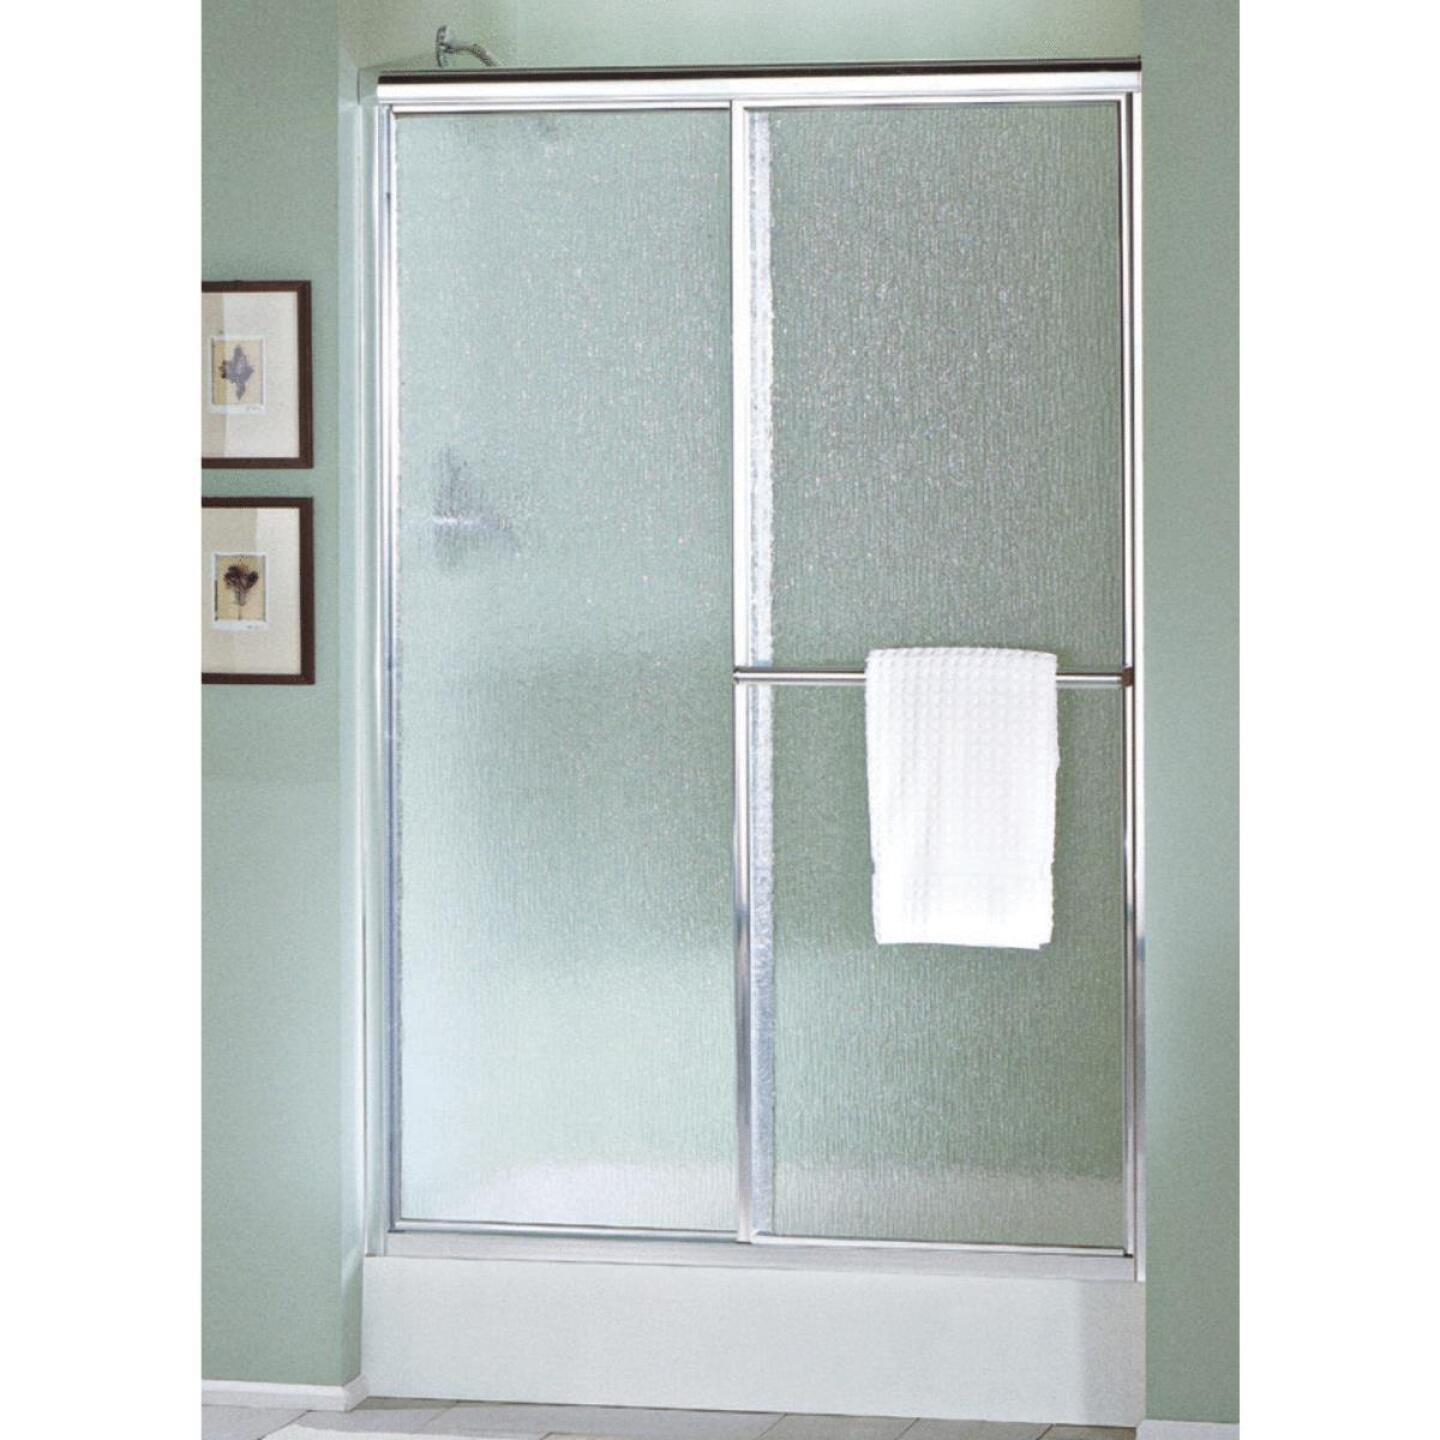 Sterling Deluxe 48-7/8 In. W. X 70 In. H. Nickel Rain Glass Sliding Shower Door Image 1